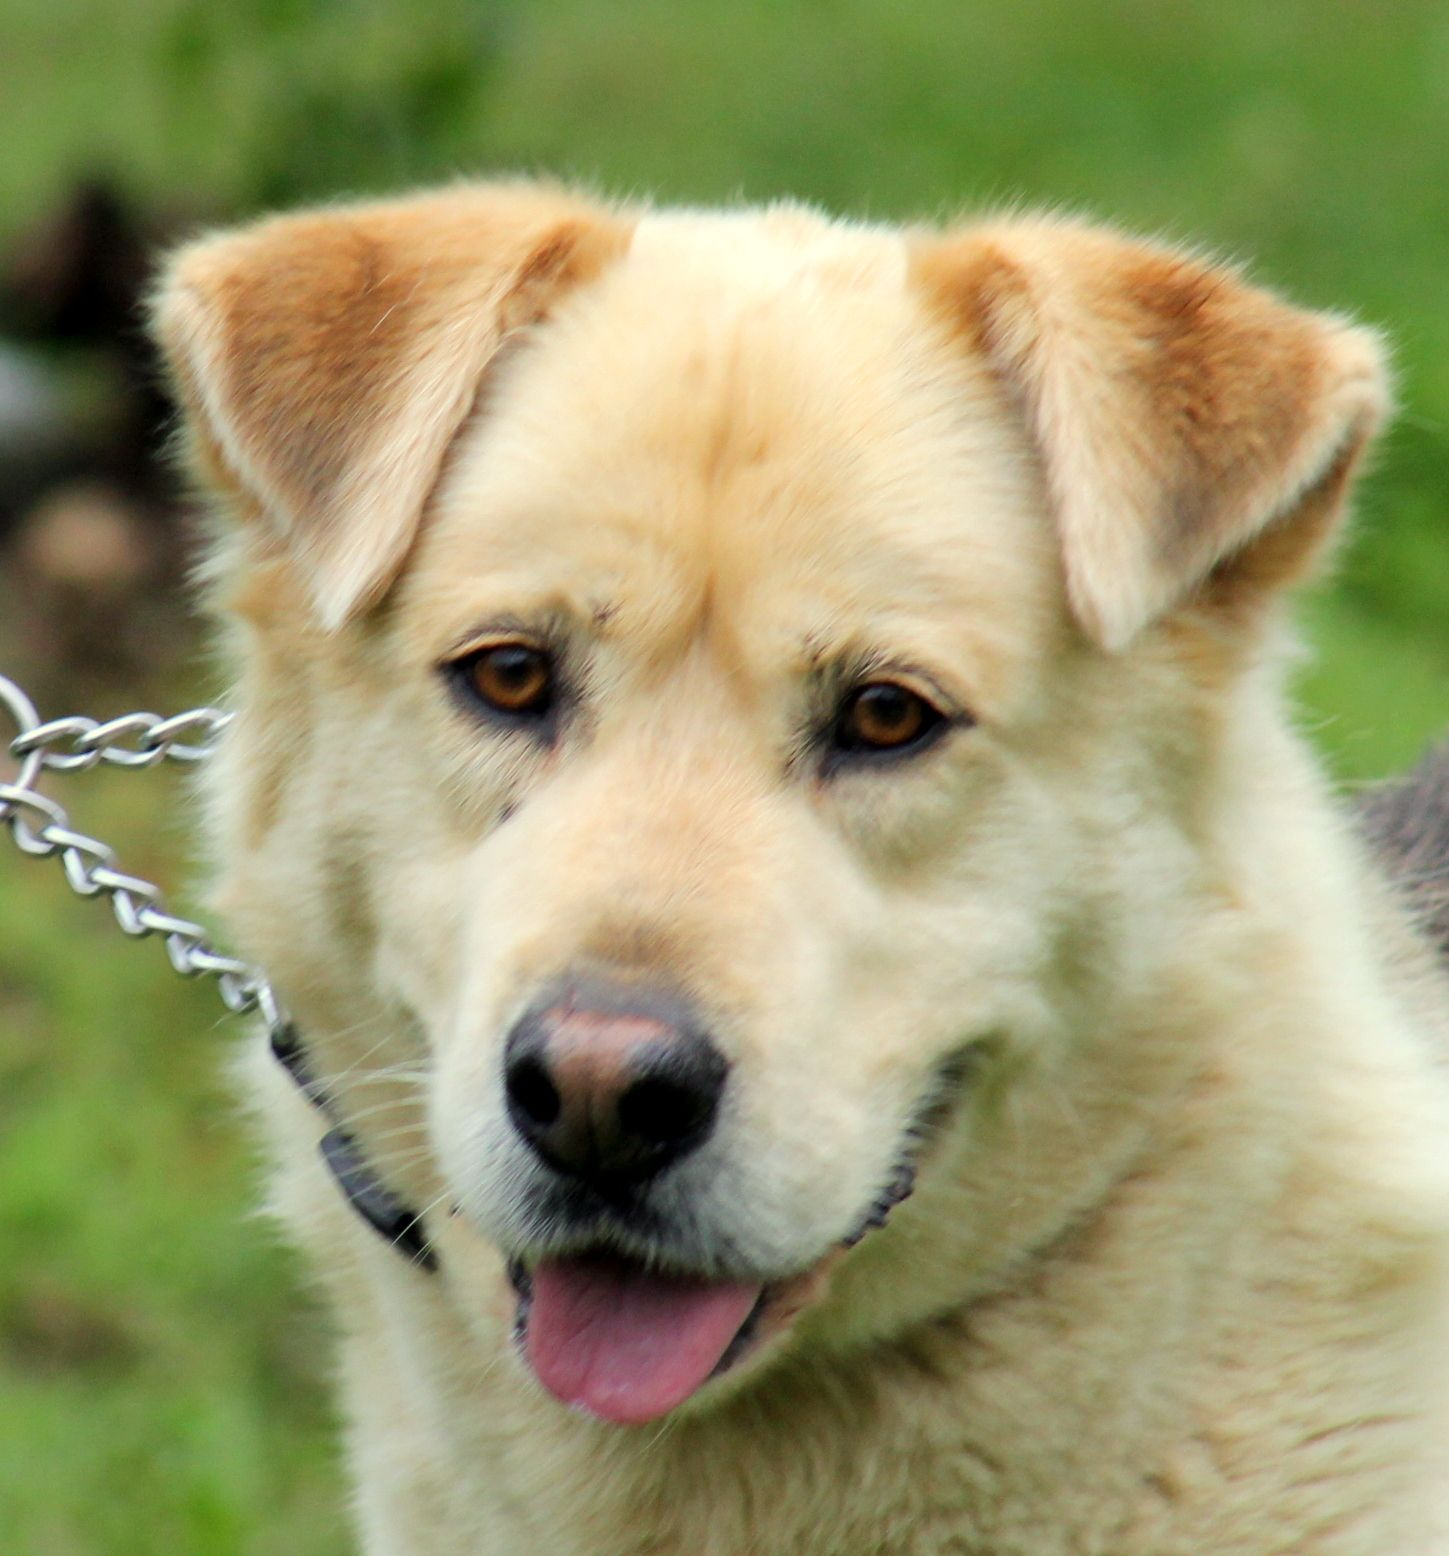 Labrador Retriever dog for Adoption in Sparta, TN. ADN